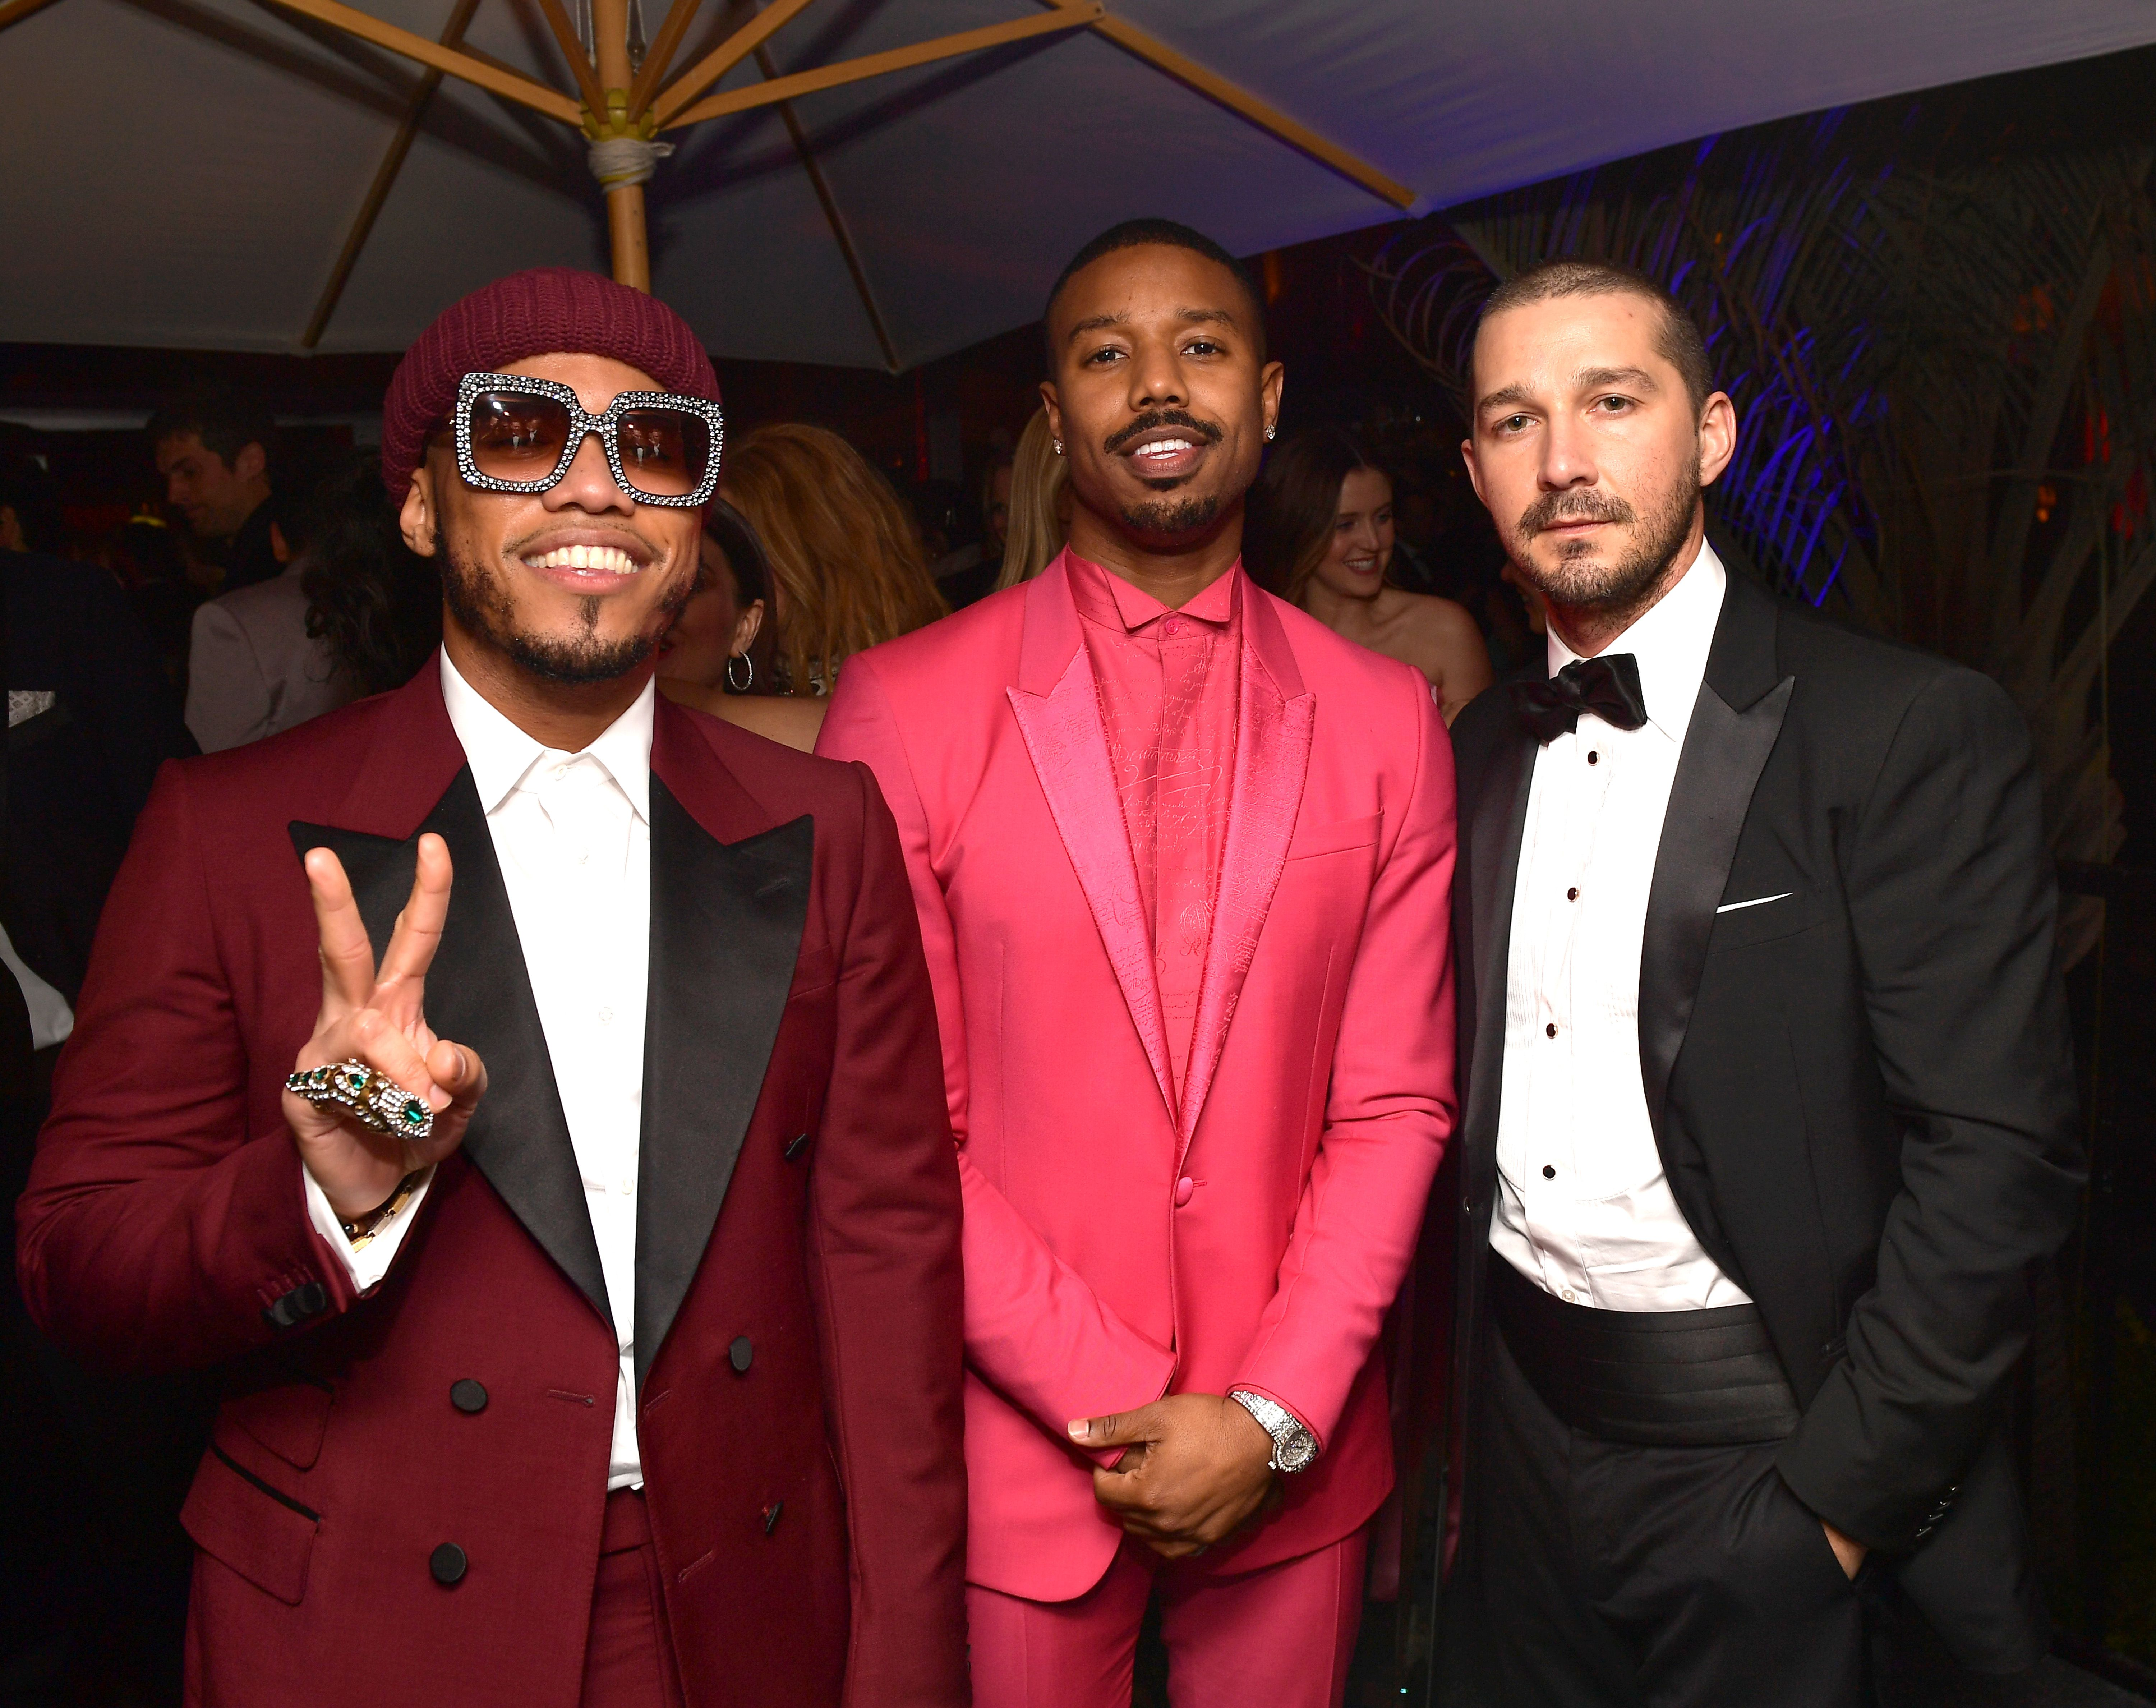 The Best-Dressed Men At The 2020 Oscars Afterparties Found All The Fun The Red Carpet Missed